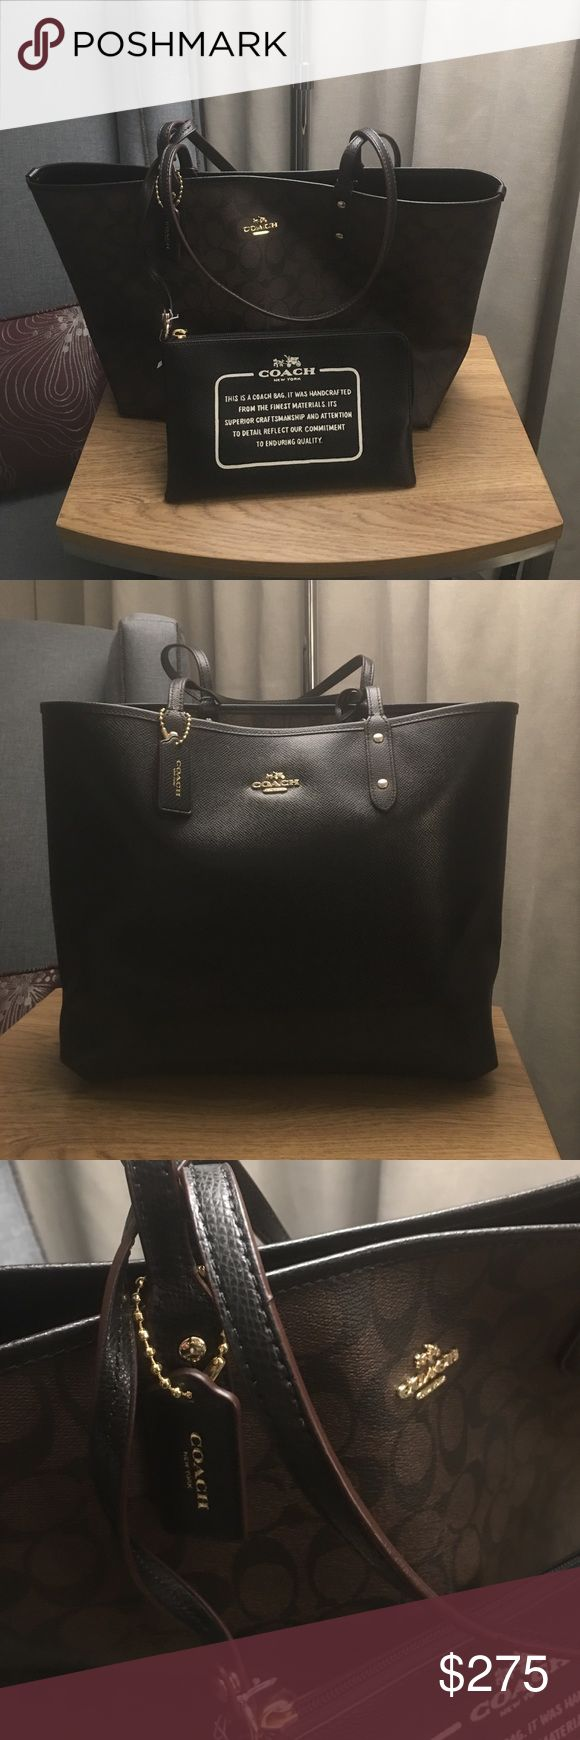 Authentic Reversible Coach Tote Bag Never used all black that can be reversed to brown & black logo tote bag - comes attached with small Coach  zipper bag Coach Bags Totes